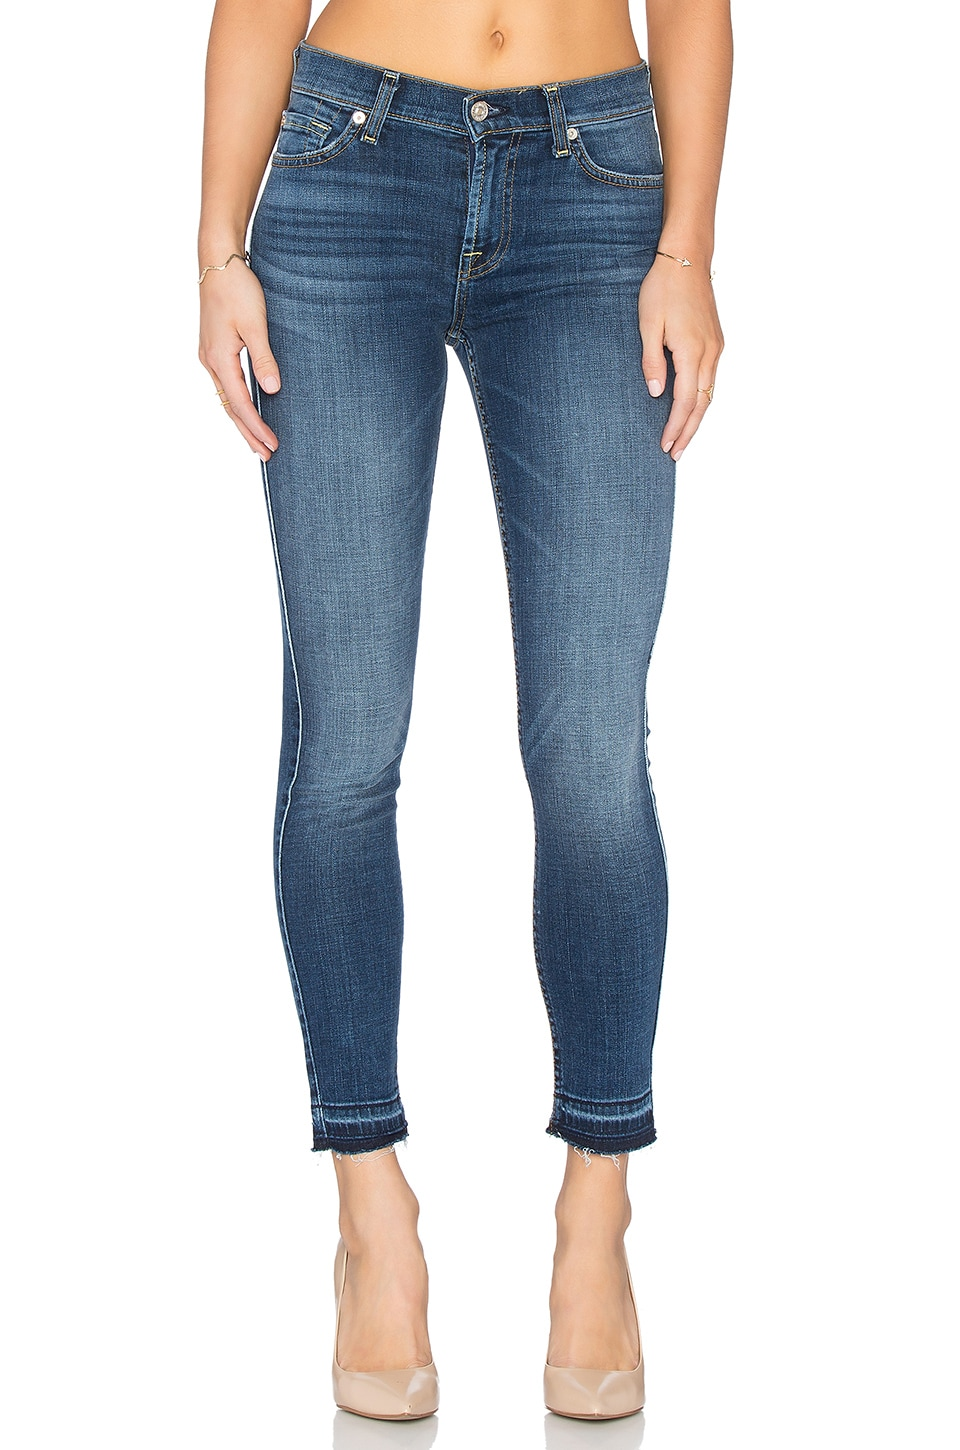 7 For All Mankind Skinny Released Hem in La Palma